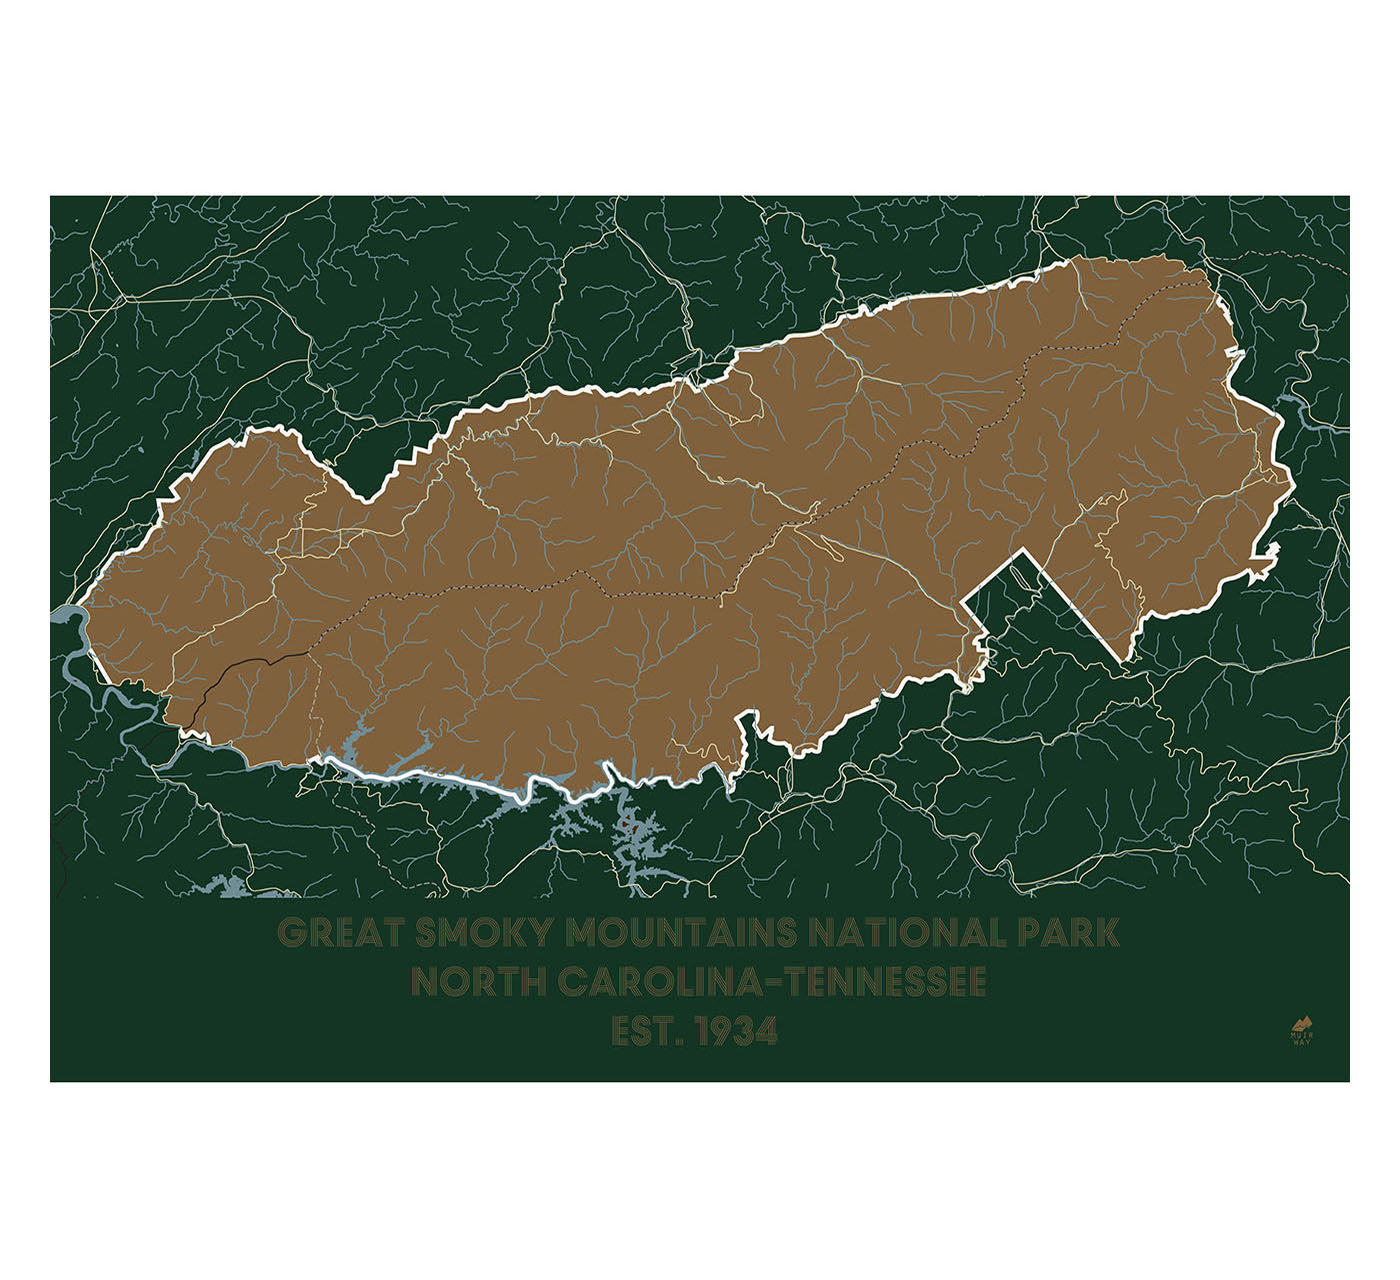 Original National Park Posters: Great Smoky Mountains National Park Poster